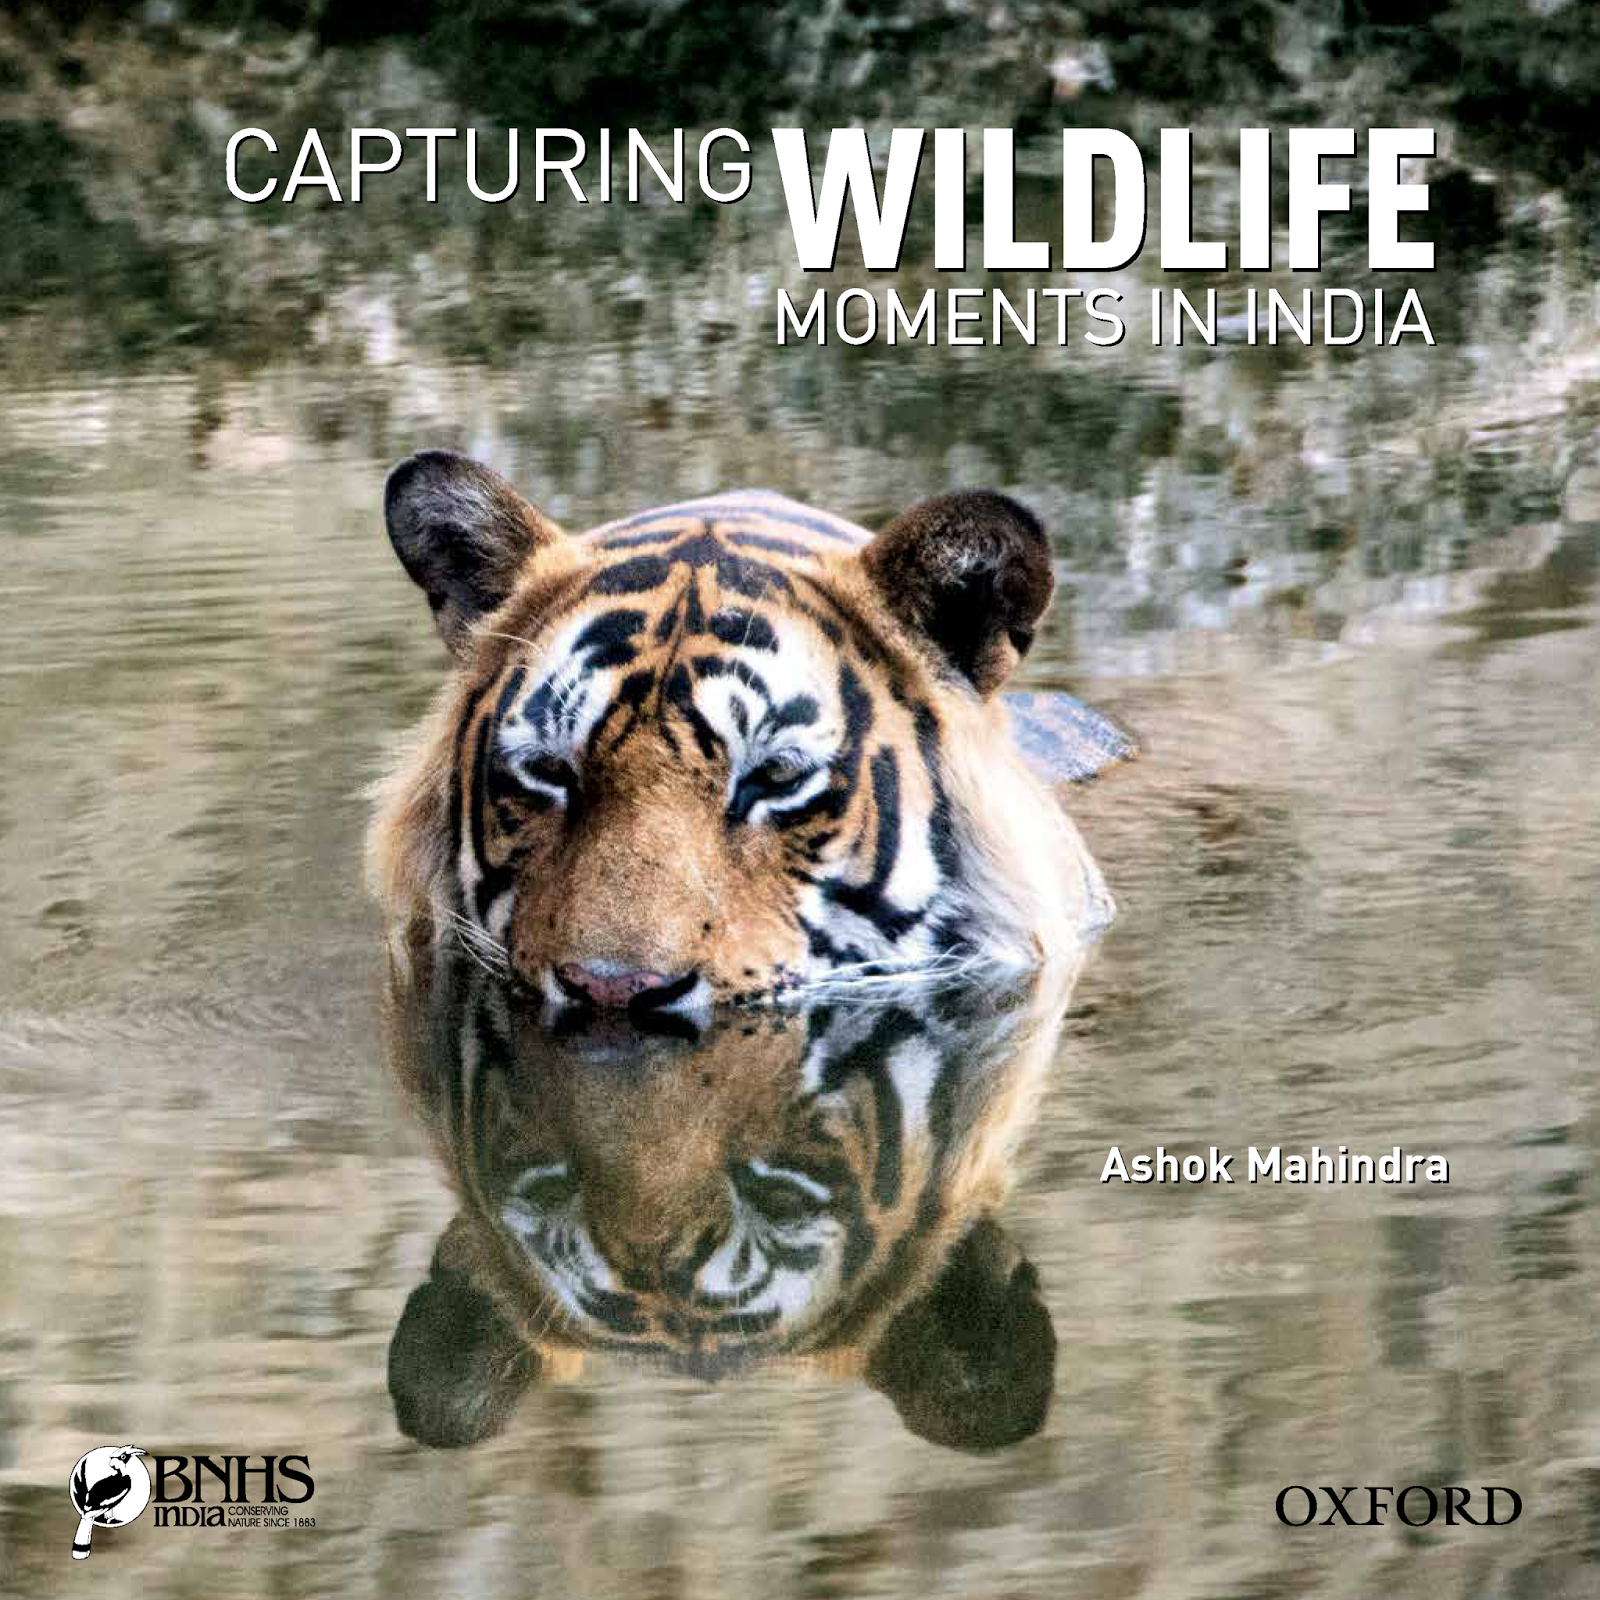 Capturing Wildlife Moments in India, Ashok Mahindra